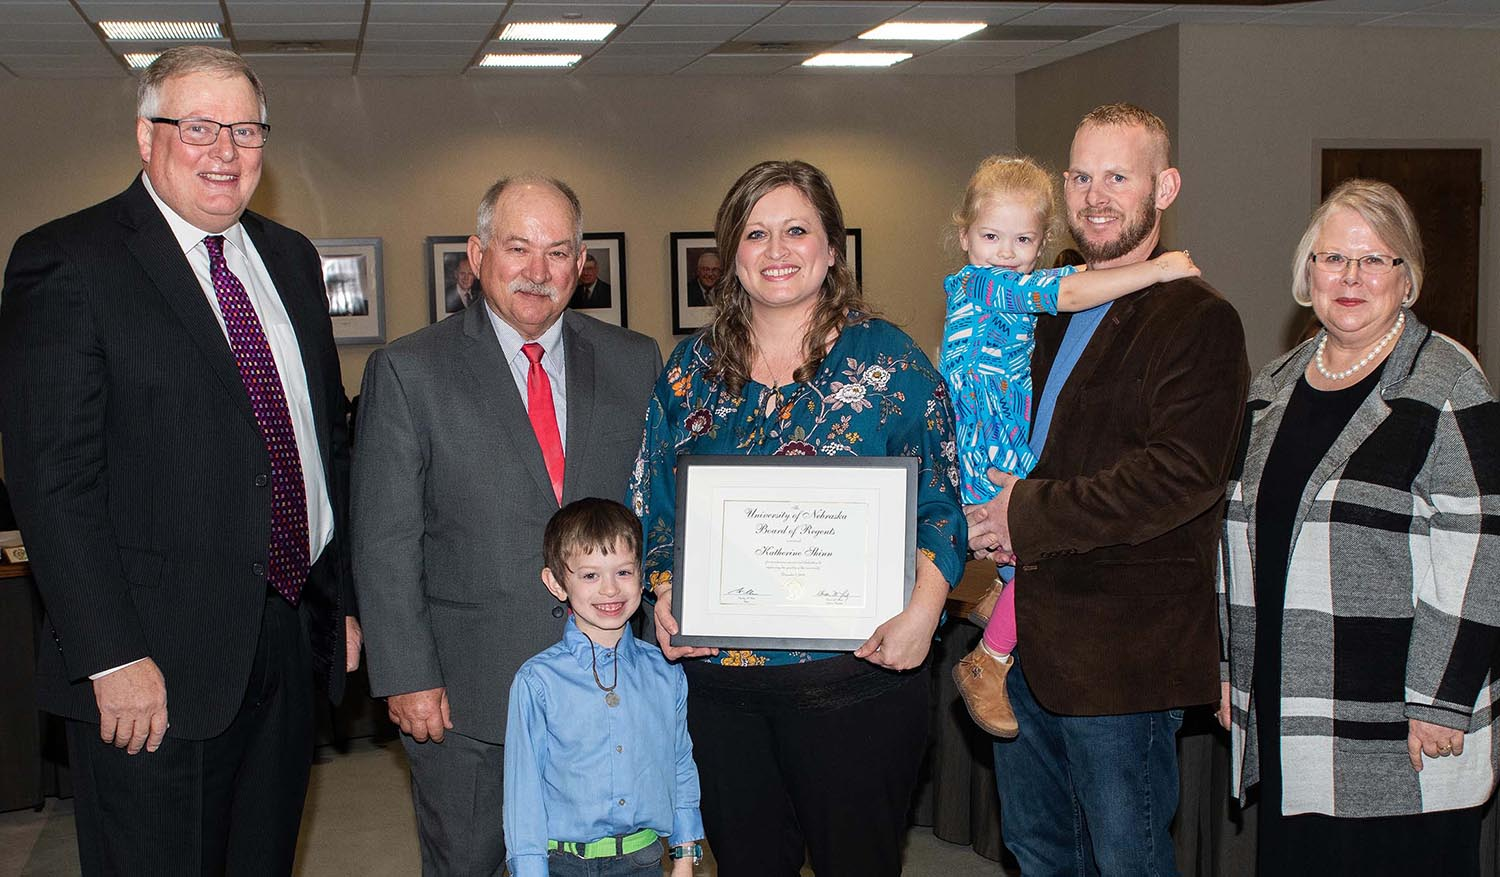 Katherine Shinn, middle, was recognized with the KUDOS award at Thursday's University of Nebraska Board of Regents meeting, which was attended by, from left, UNK Chancellor Doug Kristensen, Regent Paul Kenney, Shinn's son Landon, daughter Evelyn and husband Nolan and NU interim President Susan Fritz.